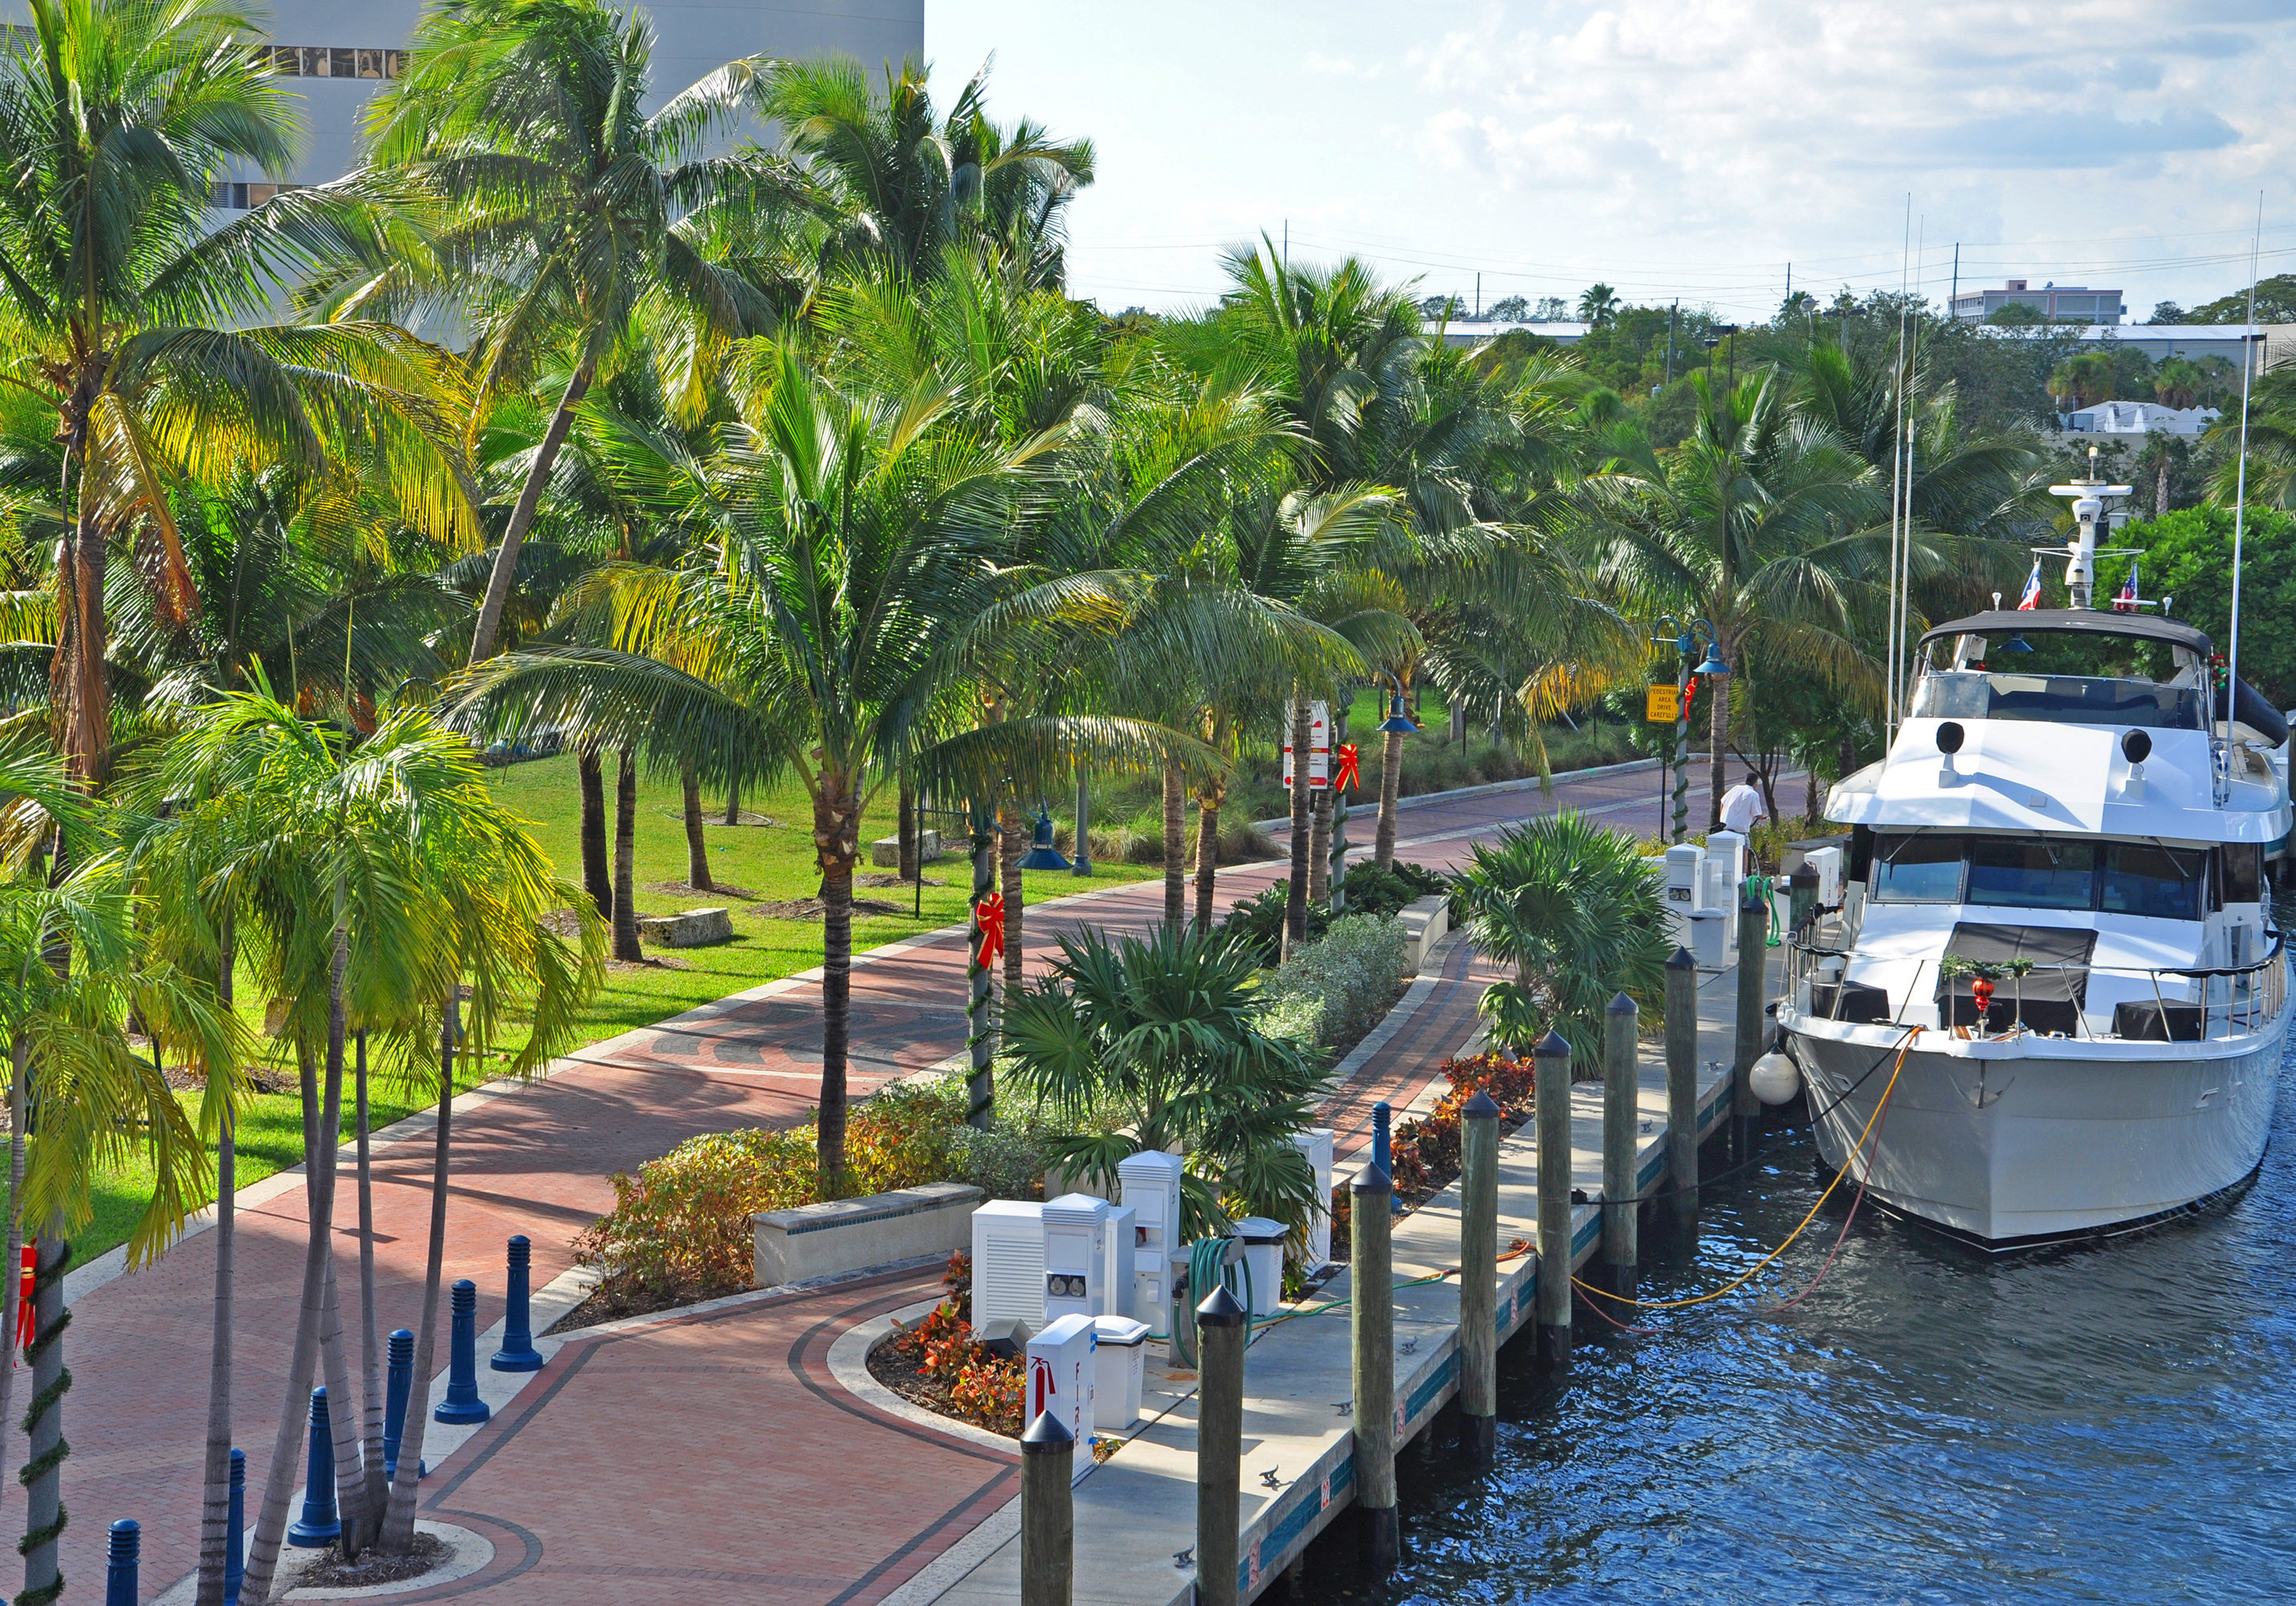 Fort Lauderdale New River is Intracoastal Waterway to Atlantic Ocean and is home for luxurious yachts in Fort Lauderdale, Florida, USA.